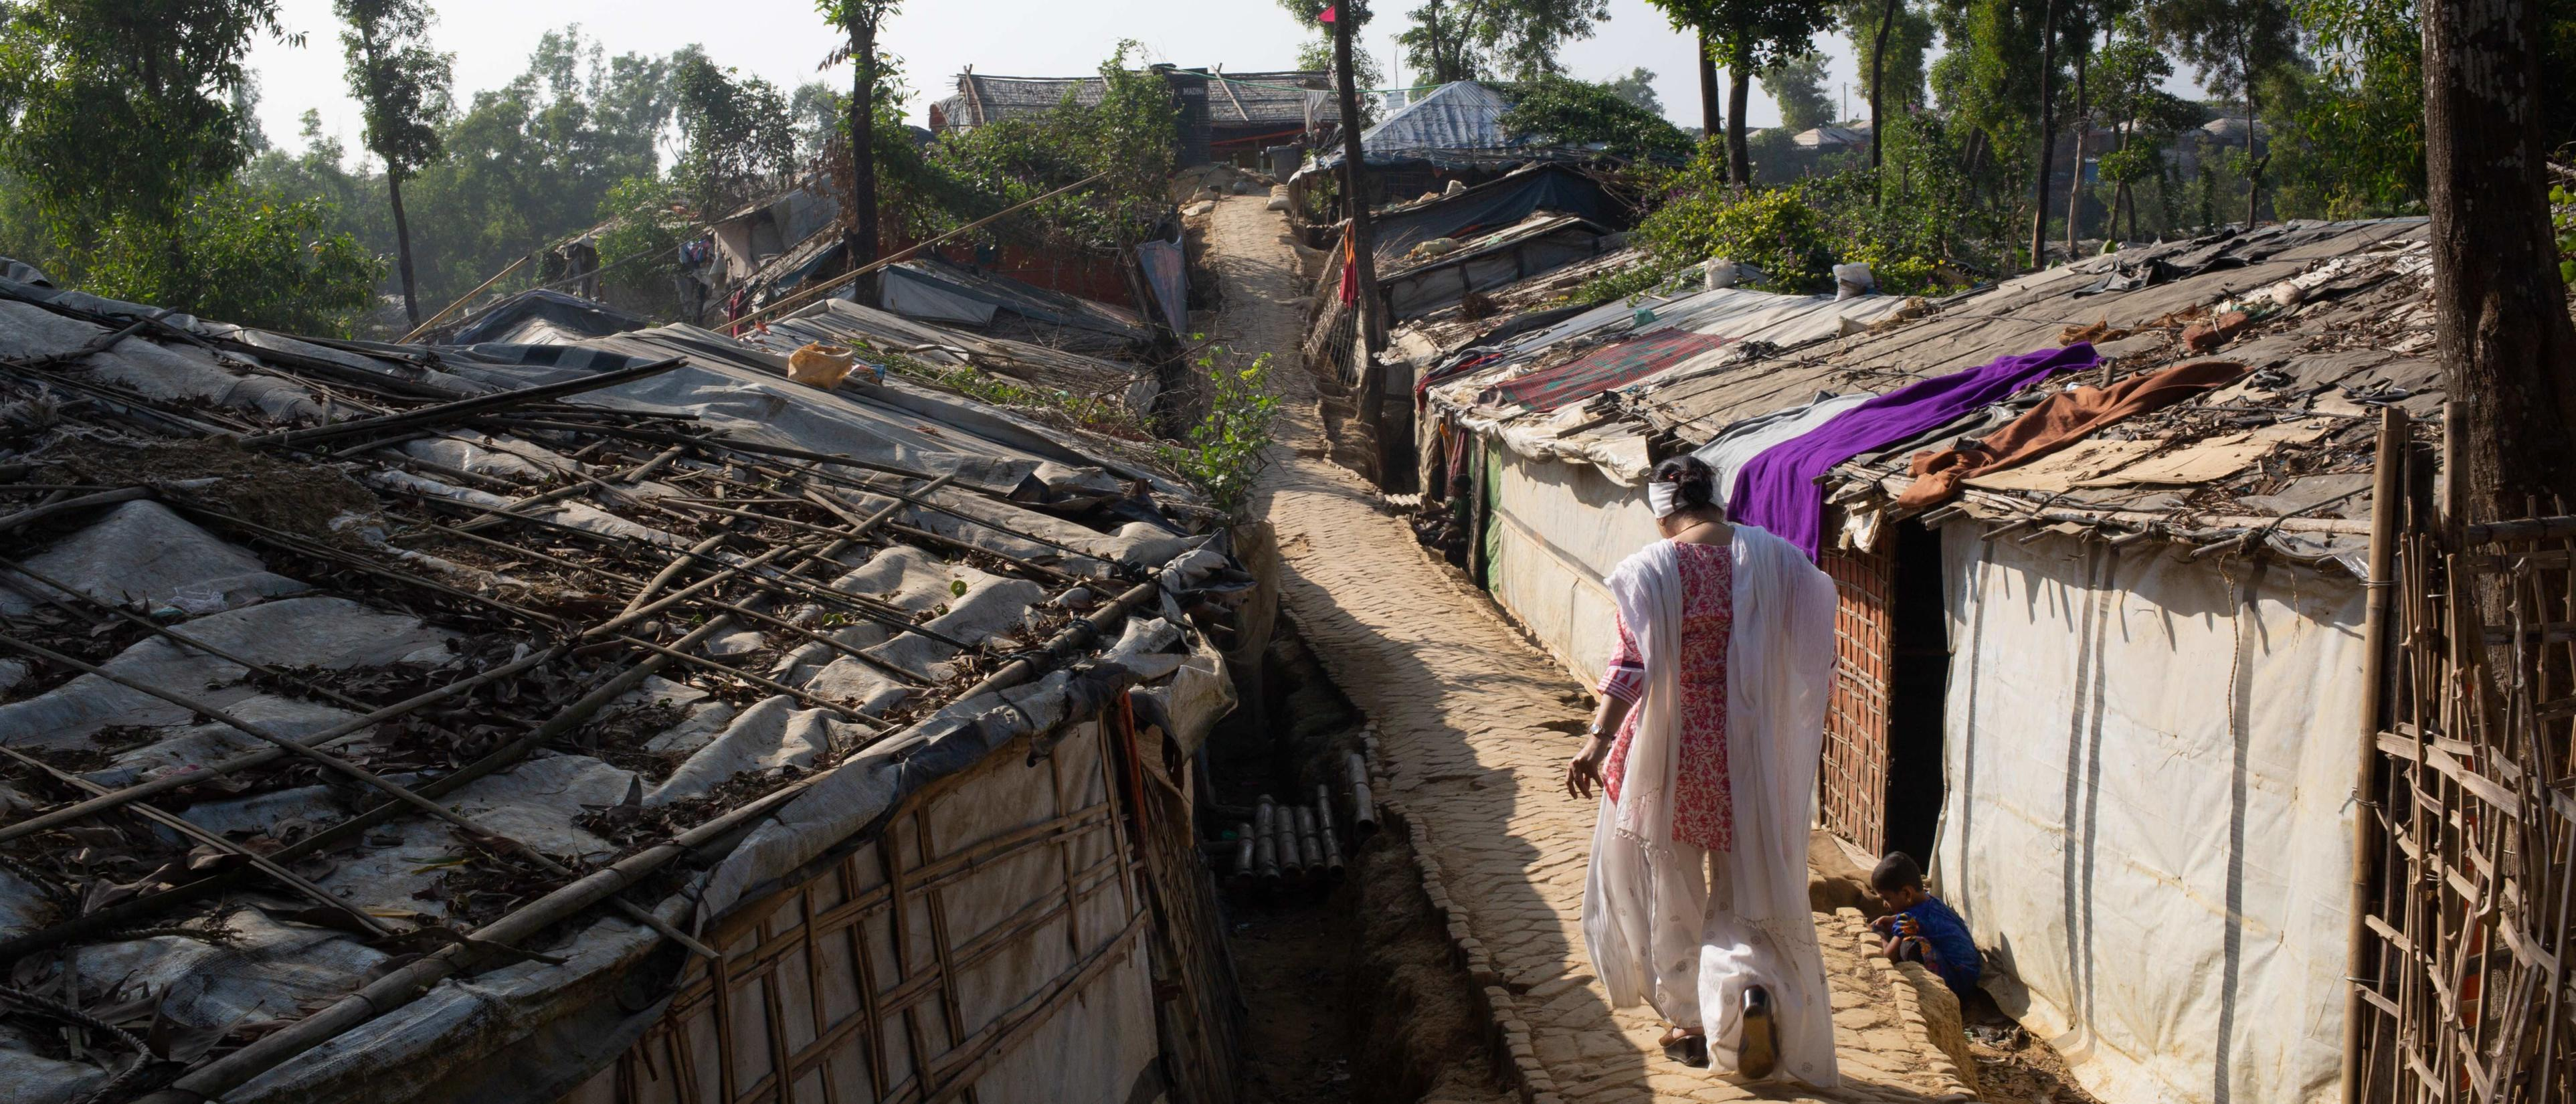 Razia has documented thousands of accounts from Rohingya women about what they'd been through.